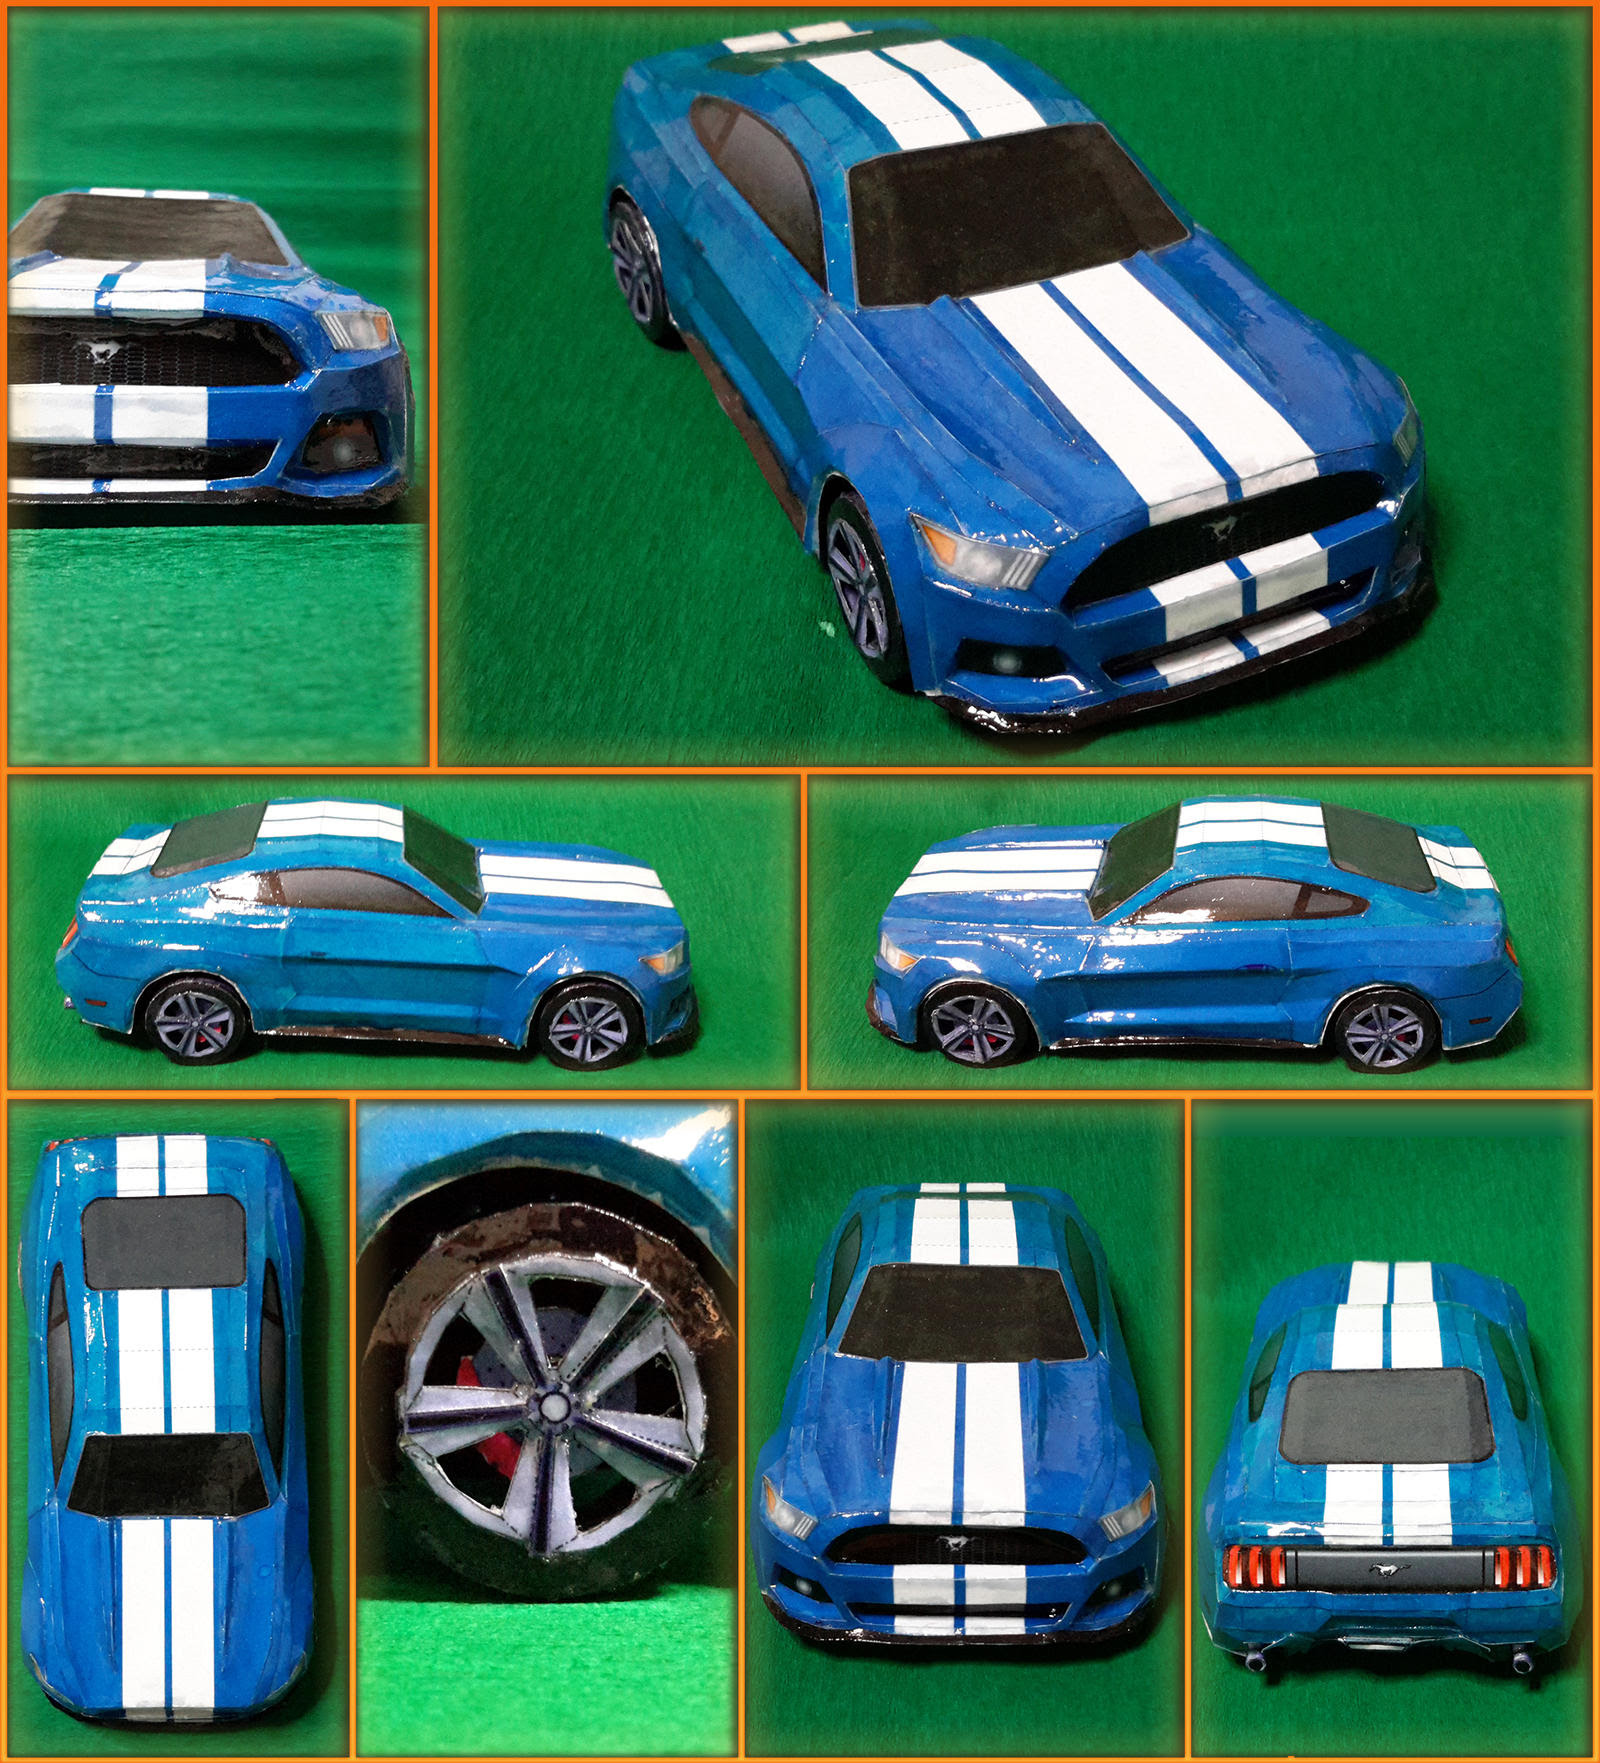 Ford Mustang GT 2015 Papercraft by Mironius on DeviantArt